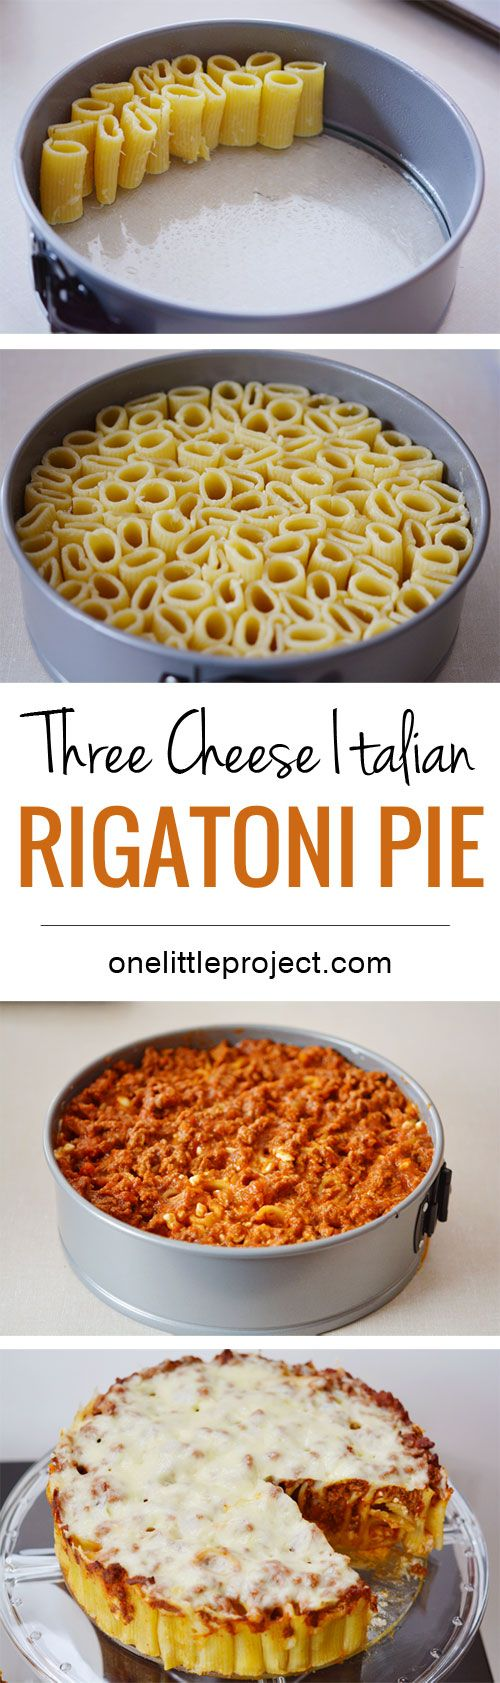 How fun is this? Stand up rigatoni noodles in a spring form pan and suddenly you have rigatoni pie